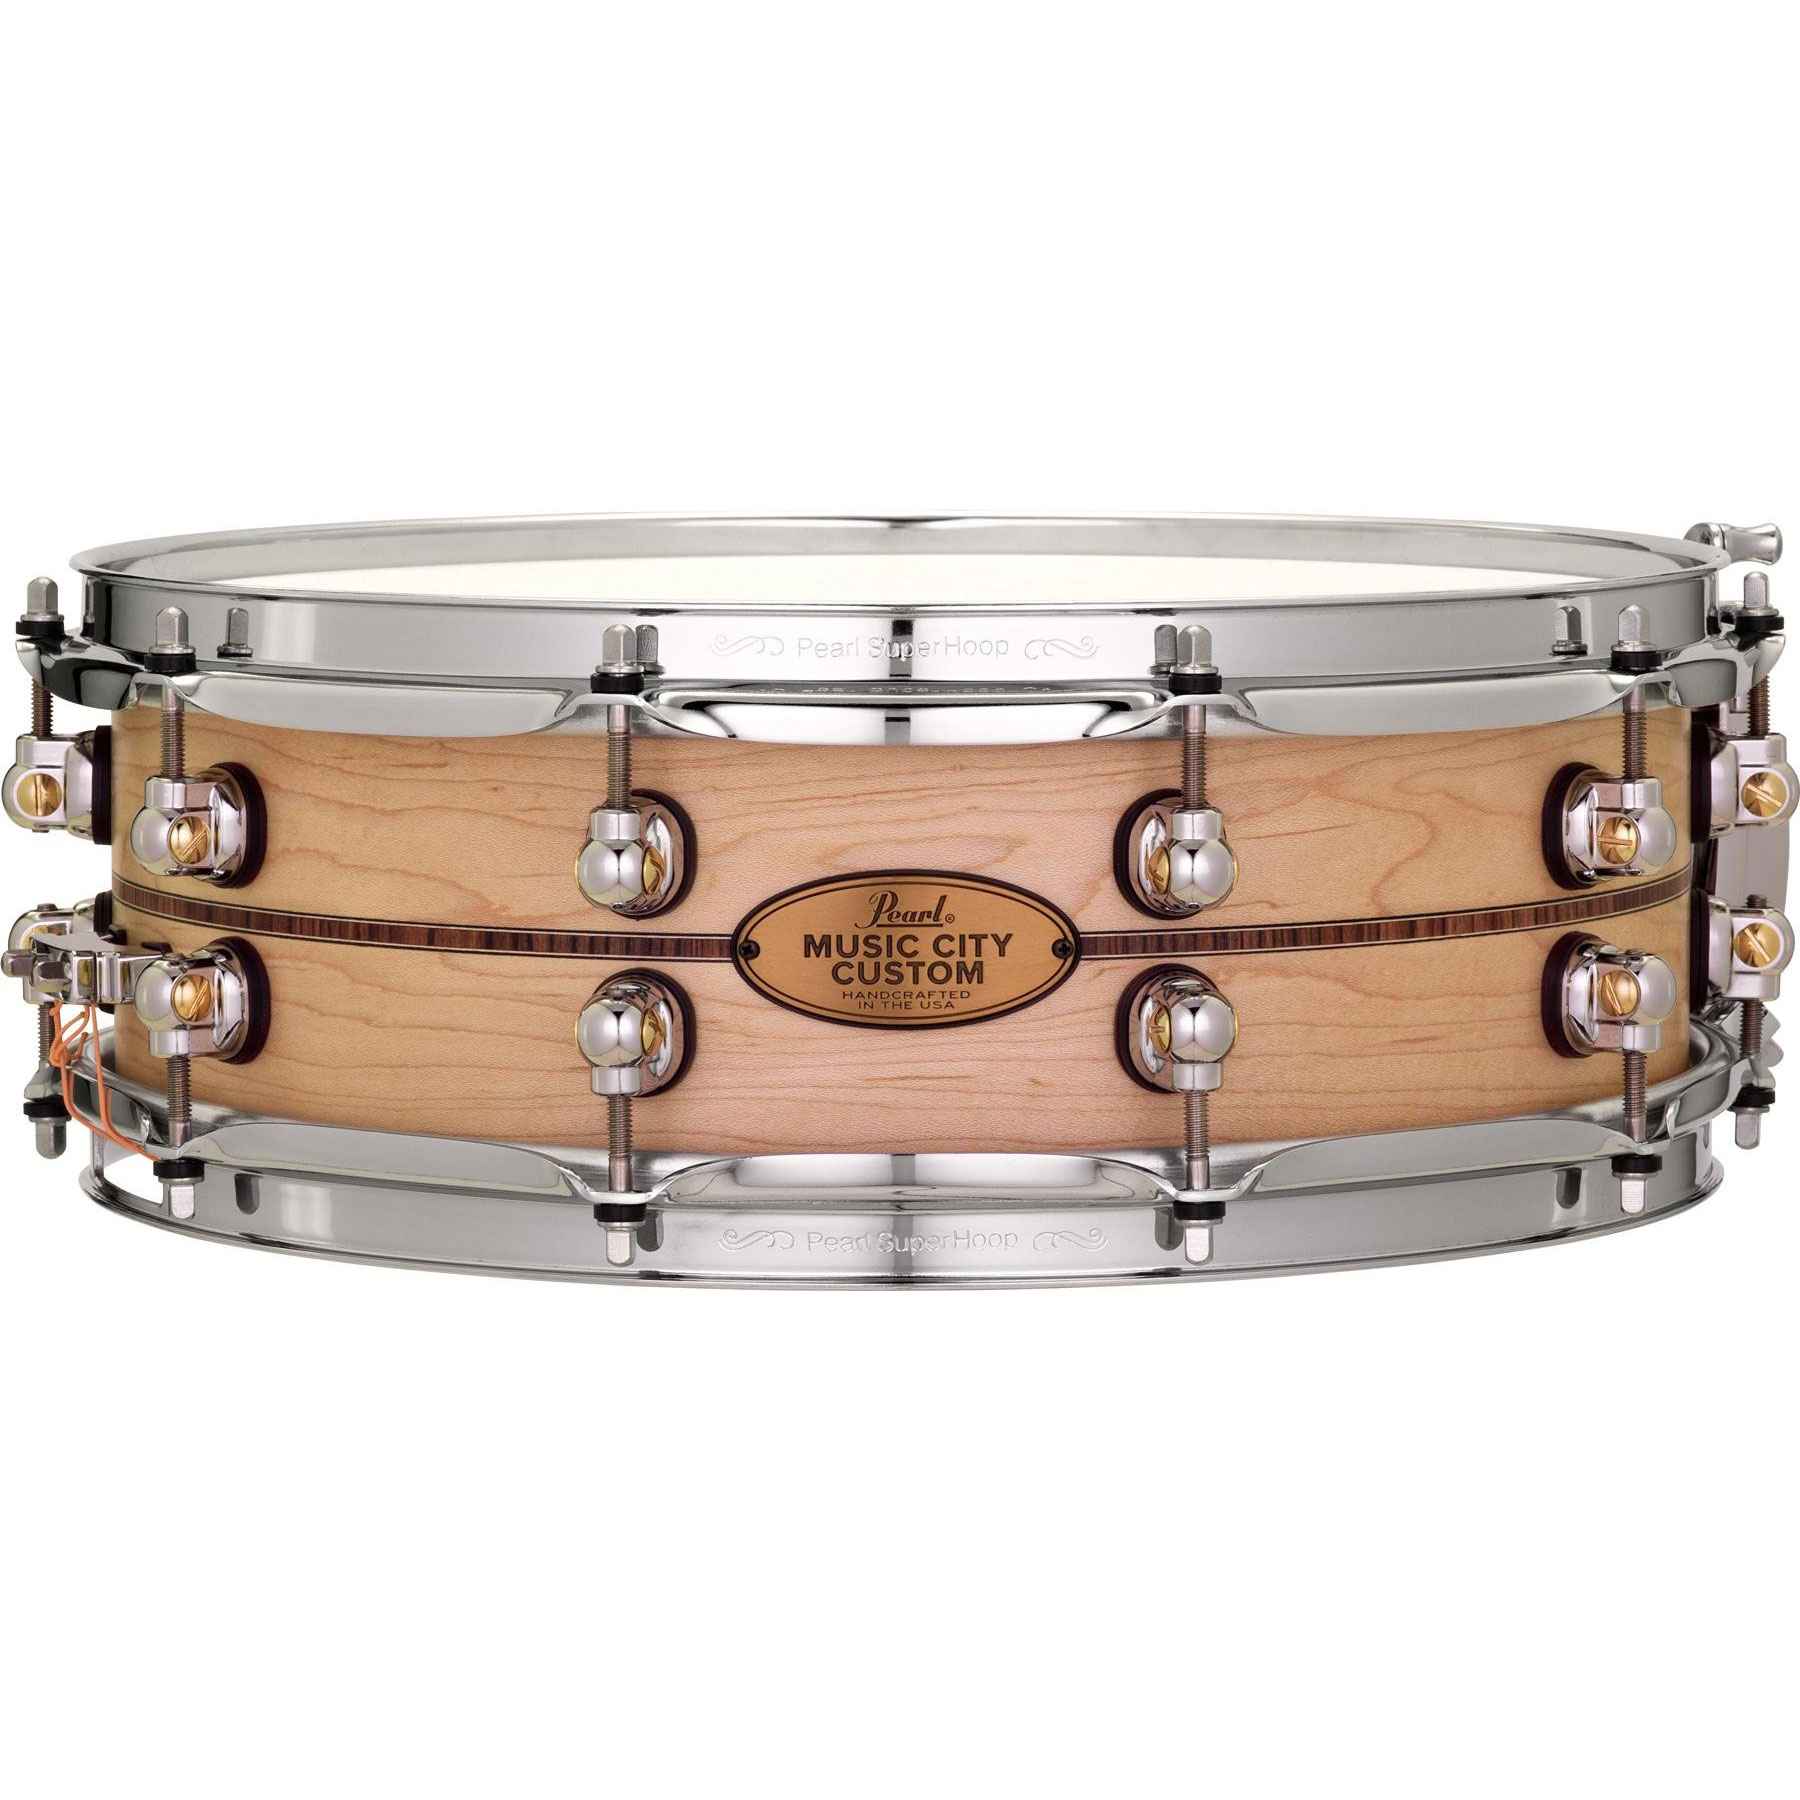 "Pearl 14"" x 5"" Music City Custom Solid Maple Snare Drum with Kingwood Center Inlay"